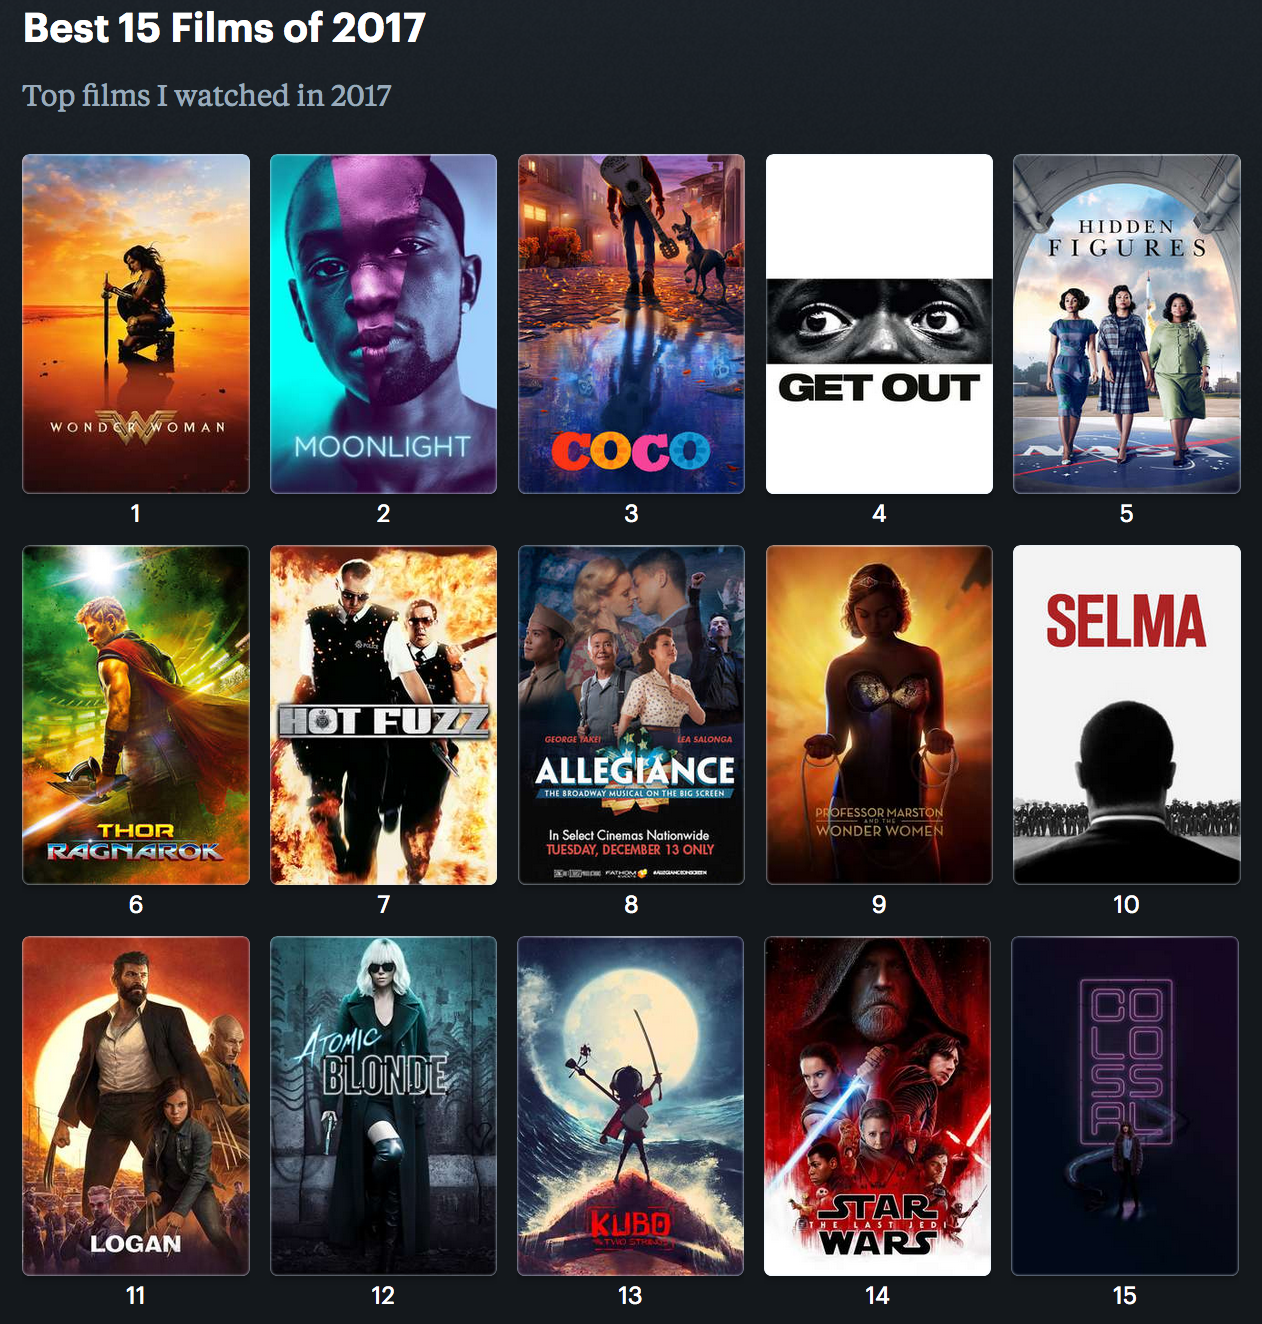 My top 15 films from 2017